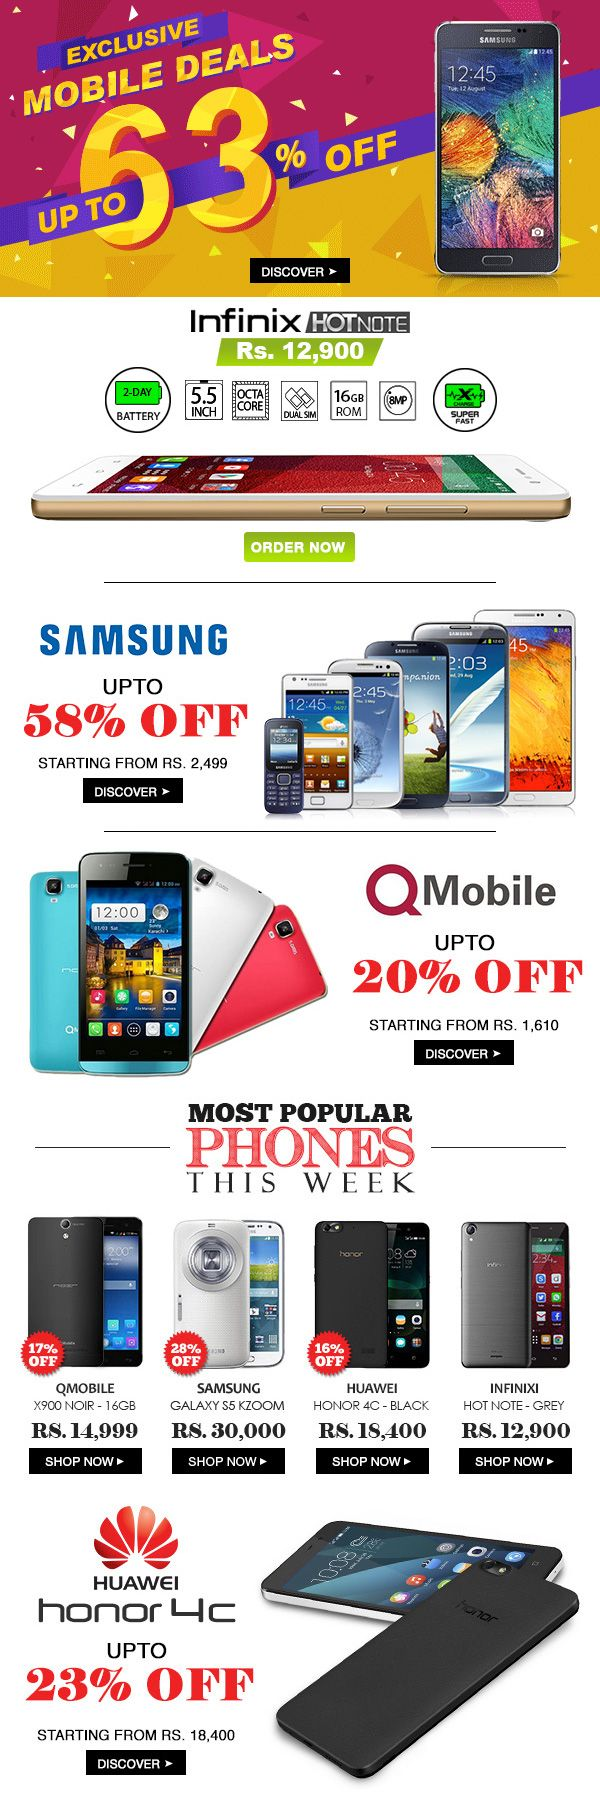 GM - NL2015JUL04 - Saturday - Mobile Deals, Infinix, Samsung, Qmobile, Huawei, Most Popular Phones